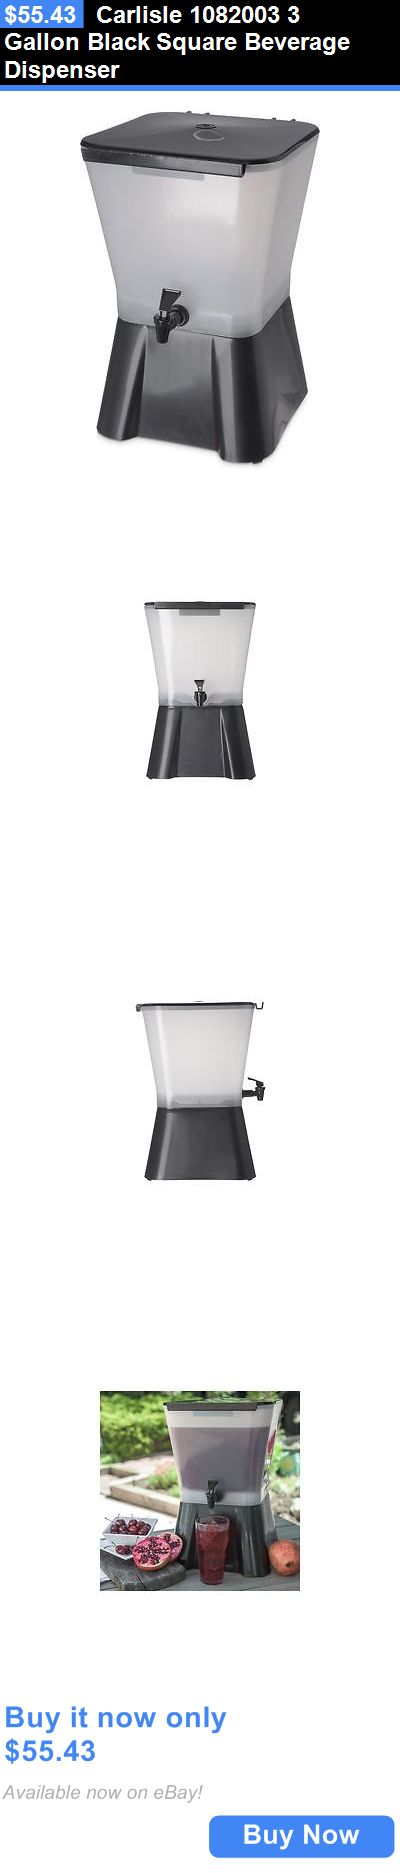 Food And Drink: Carlisle 1082003 3 Gallon Black Square Beverage Dispenser BUY IT NOW ONLY: $55.43